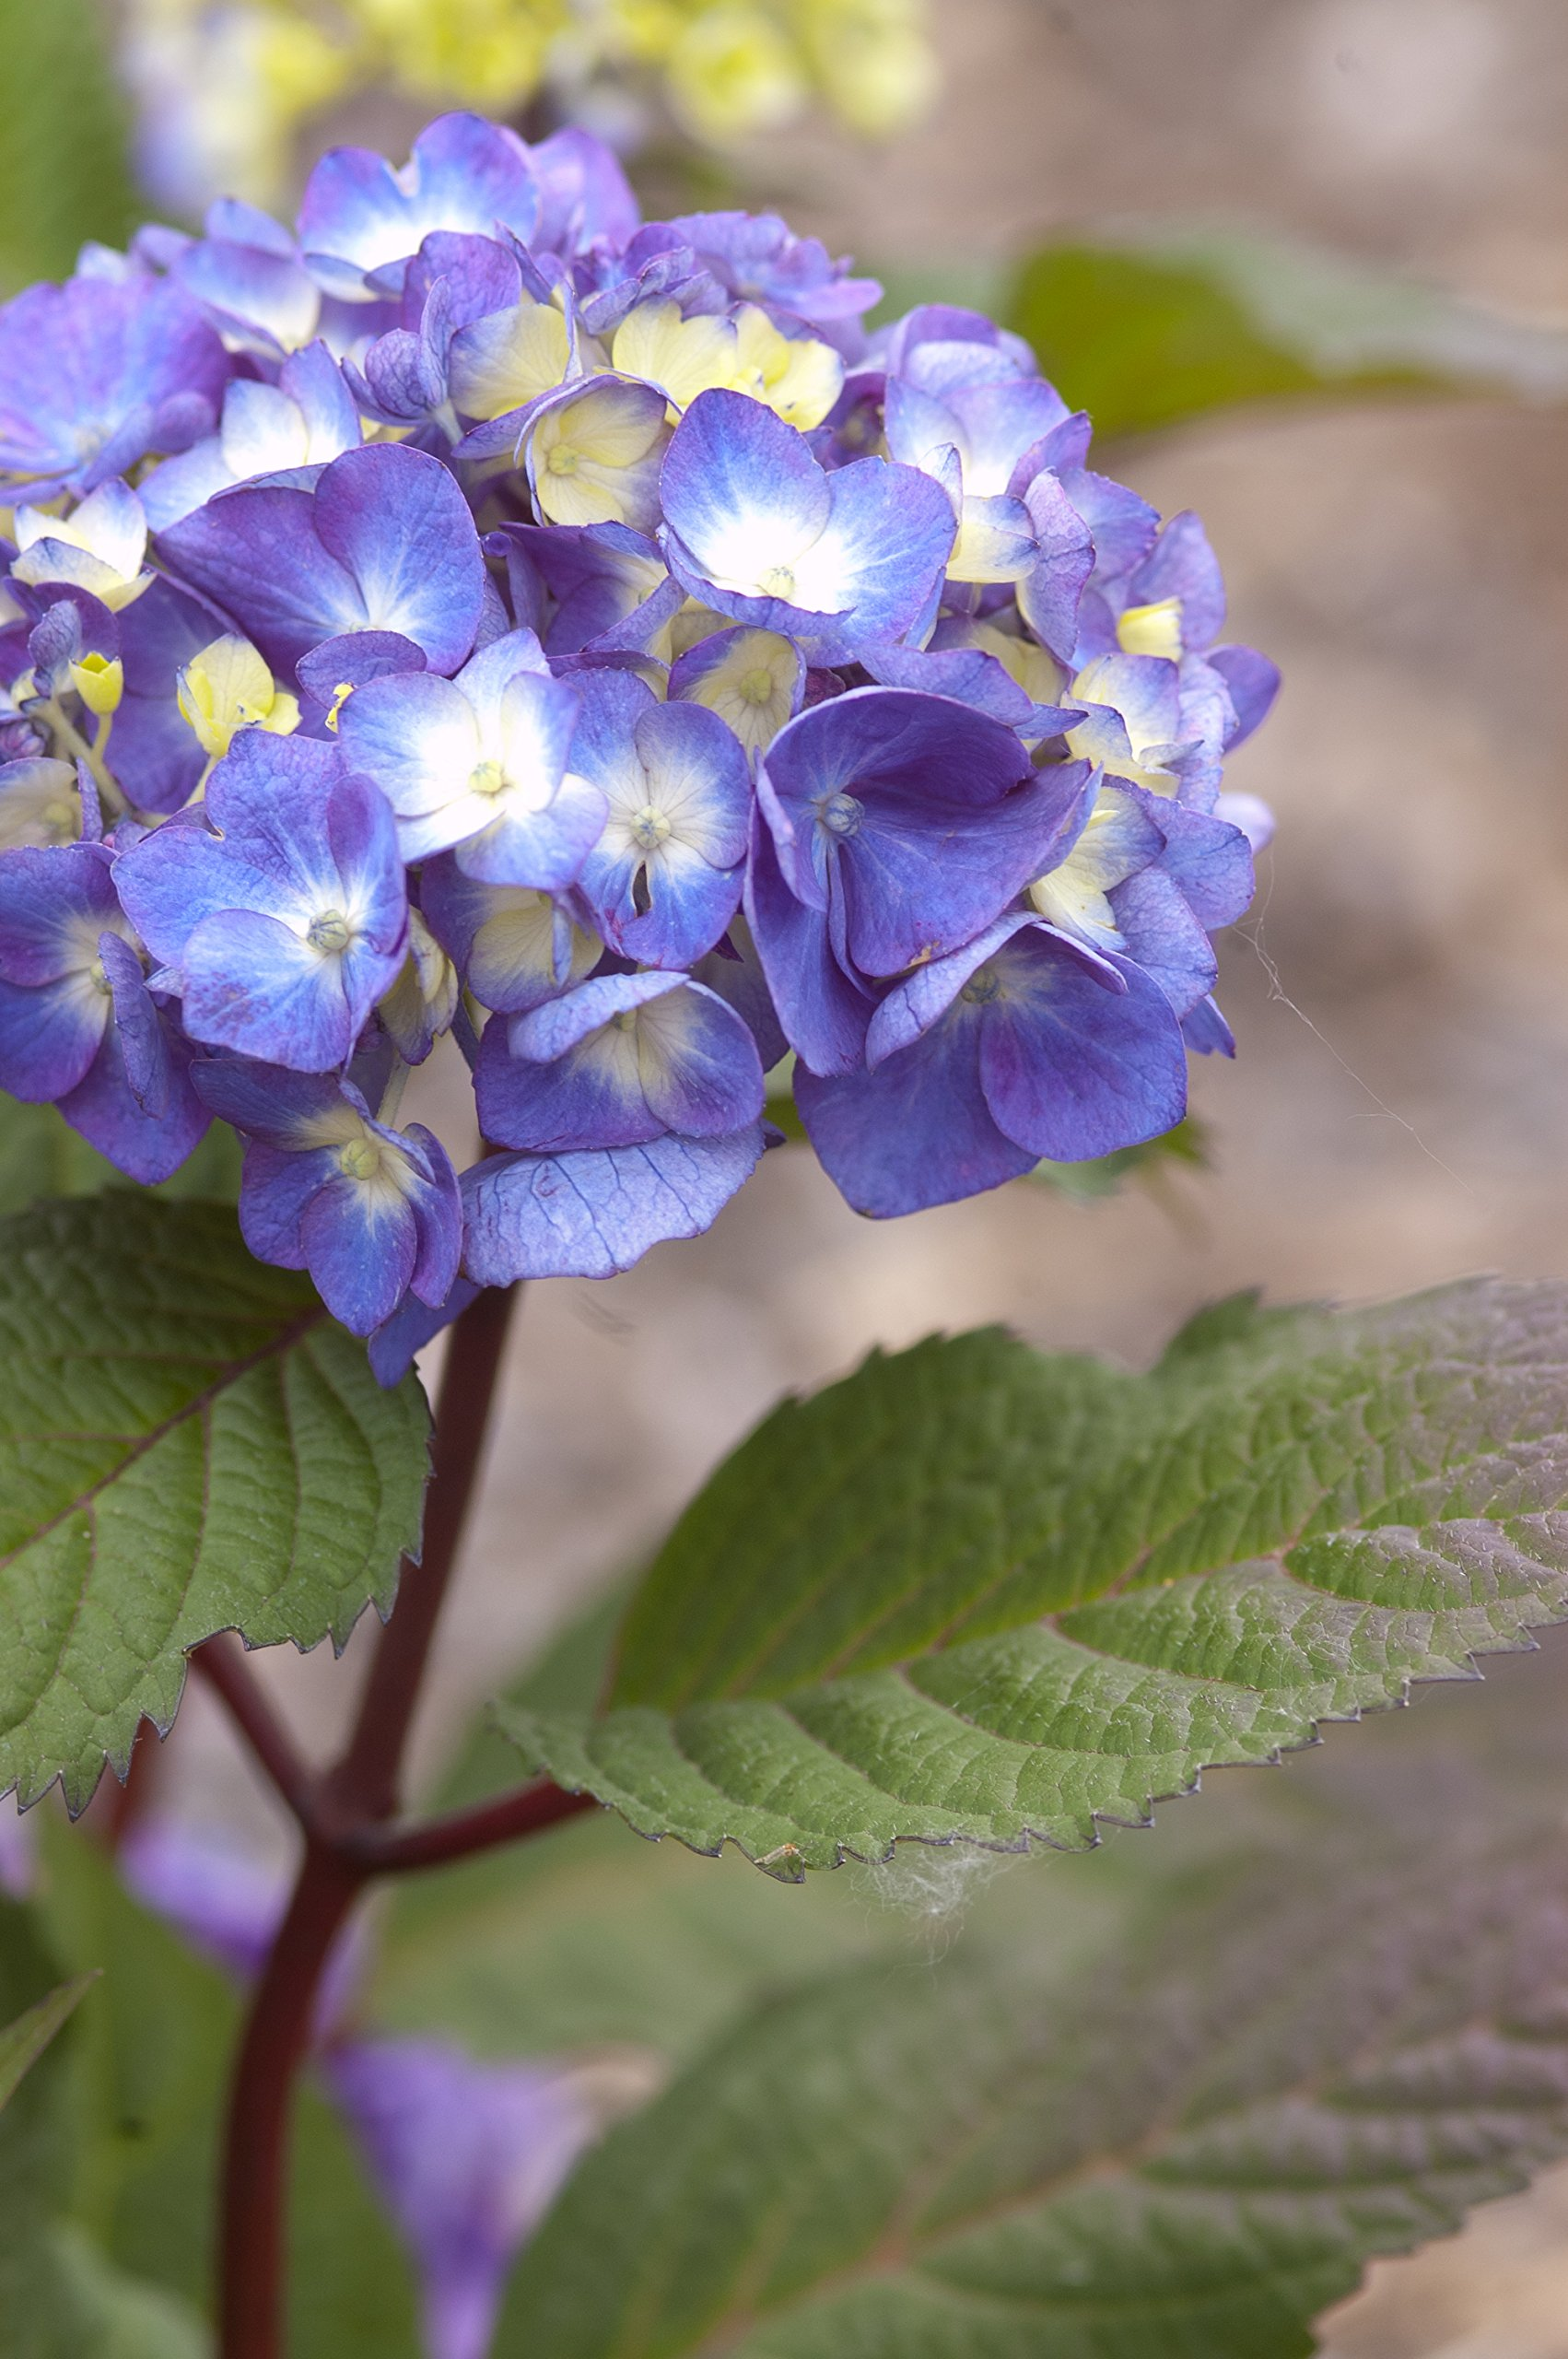 Endless Summer Collection - Hydrangea mac. Endless Summer BloomStruck (Reblooming Hydrangea) Shrub, RB purple, #3 - Size Container by Green Promise Farms (Image #3)